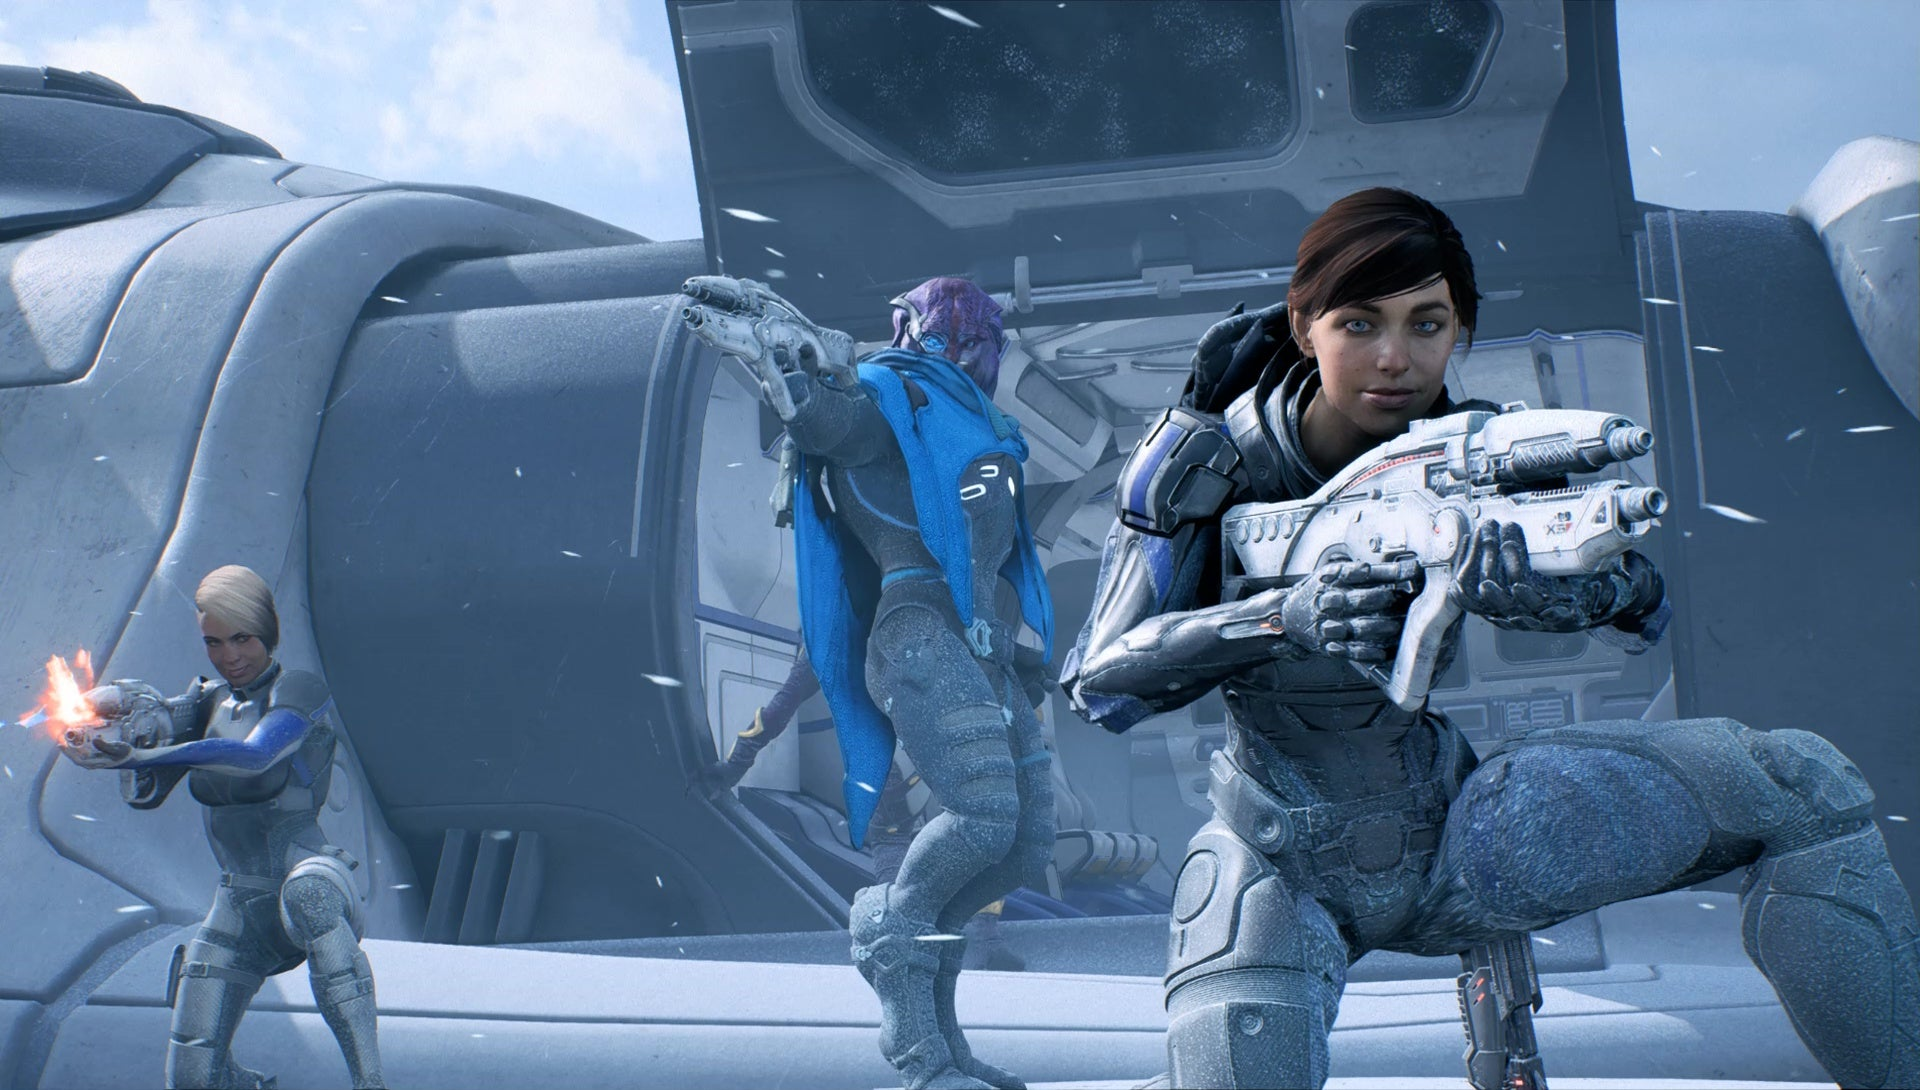 Sources: BioWare Montreal Downsized, Mass Effect Put On Ice For Now